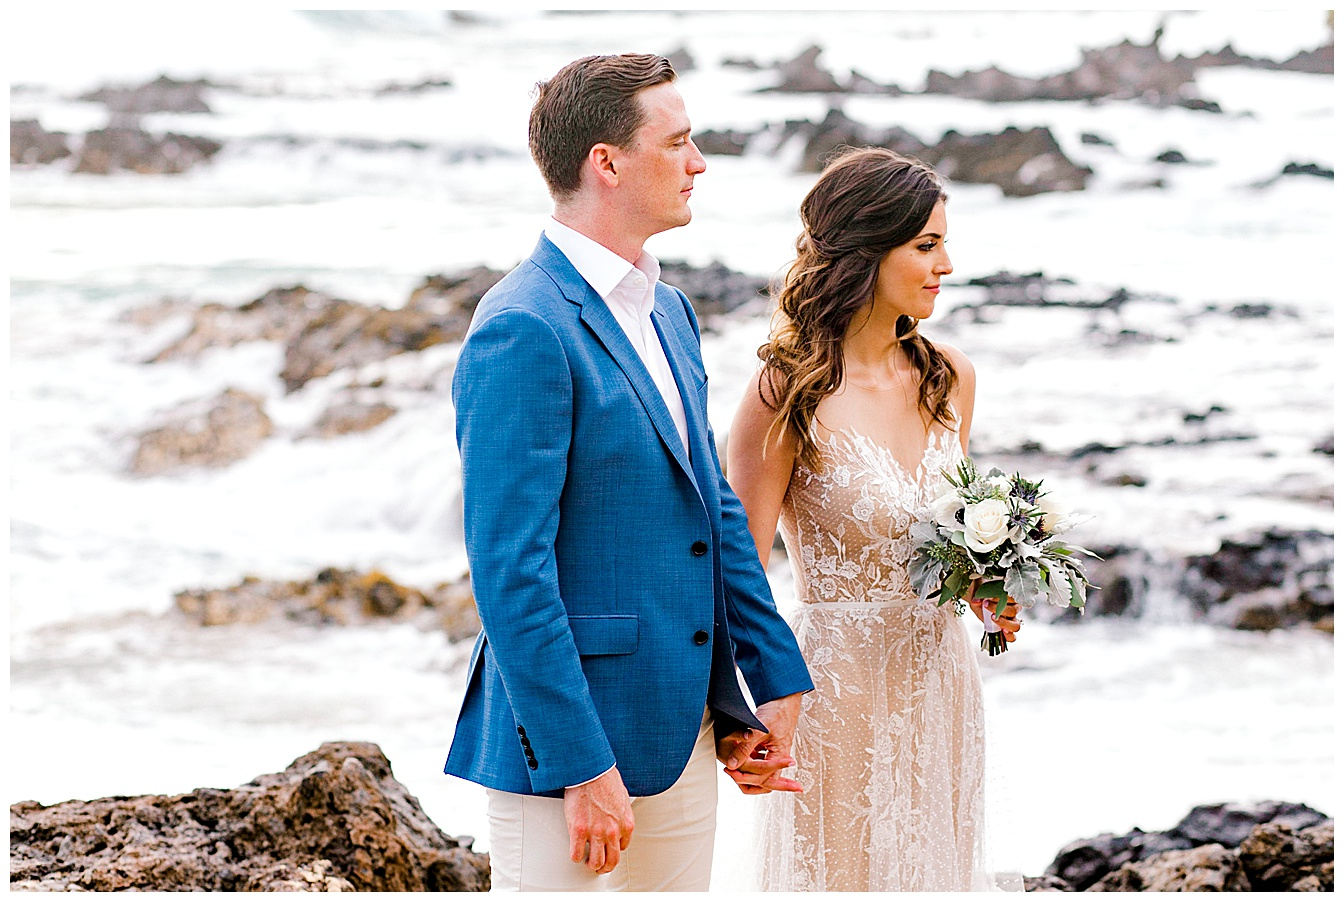 Bride and groom standing on the beach during a Maui elopement ceremony